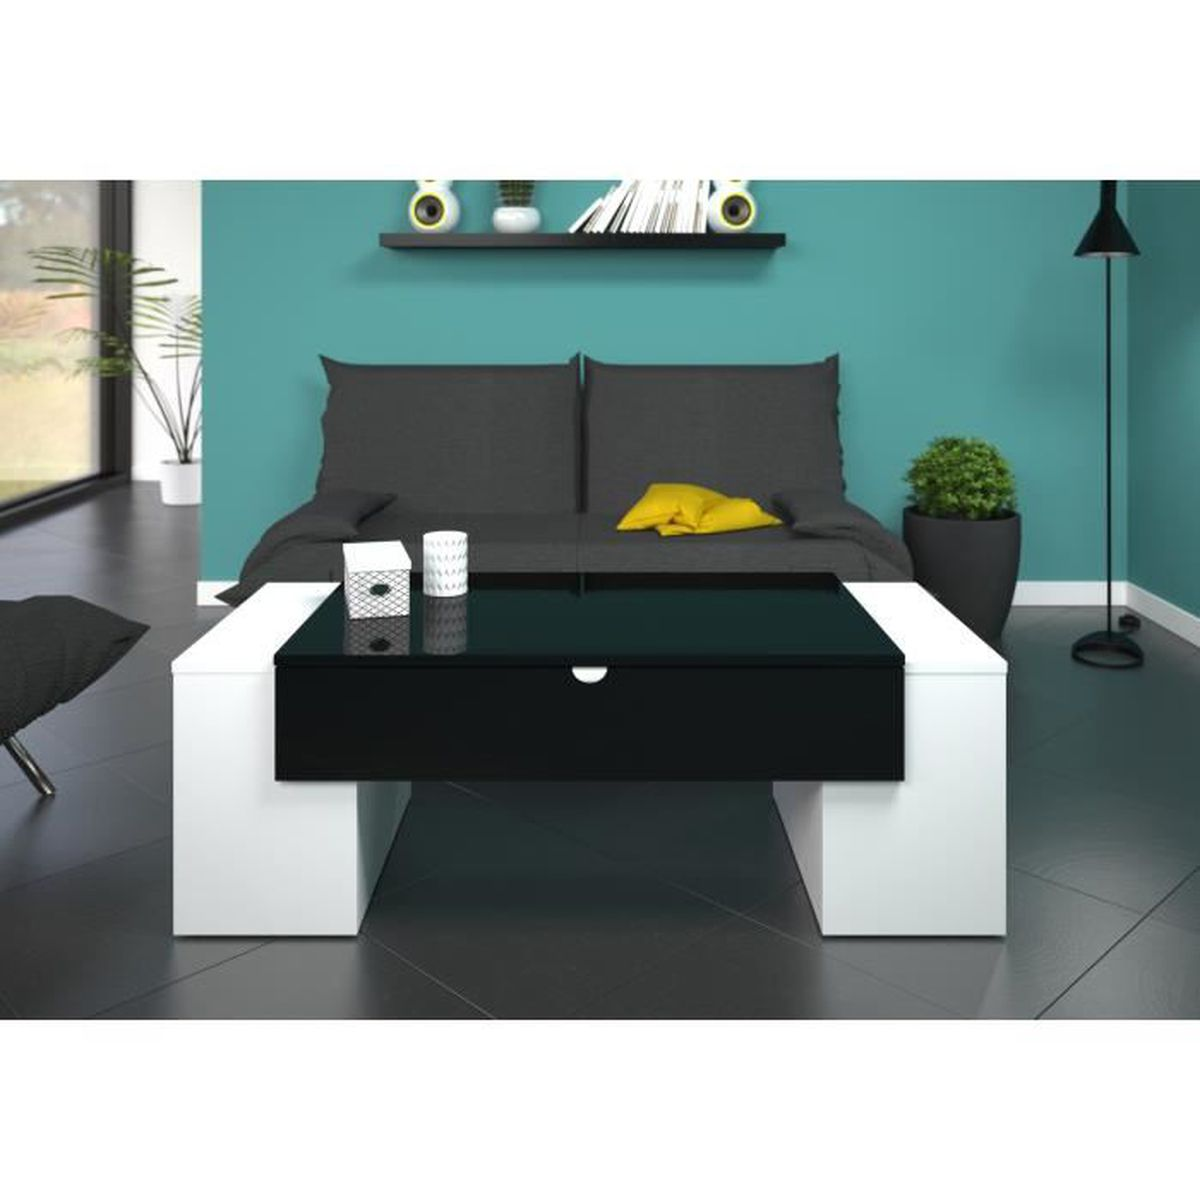 table basse rangement achat vente table basse rangement pas cher cdiscount. Black Bedroom Furniture Sets. Home Design Ideas